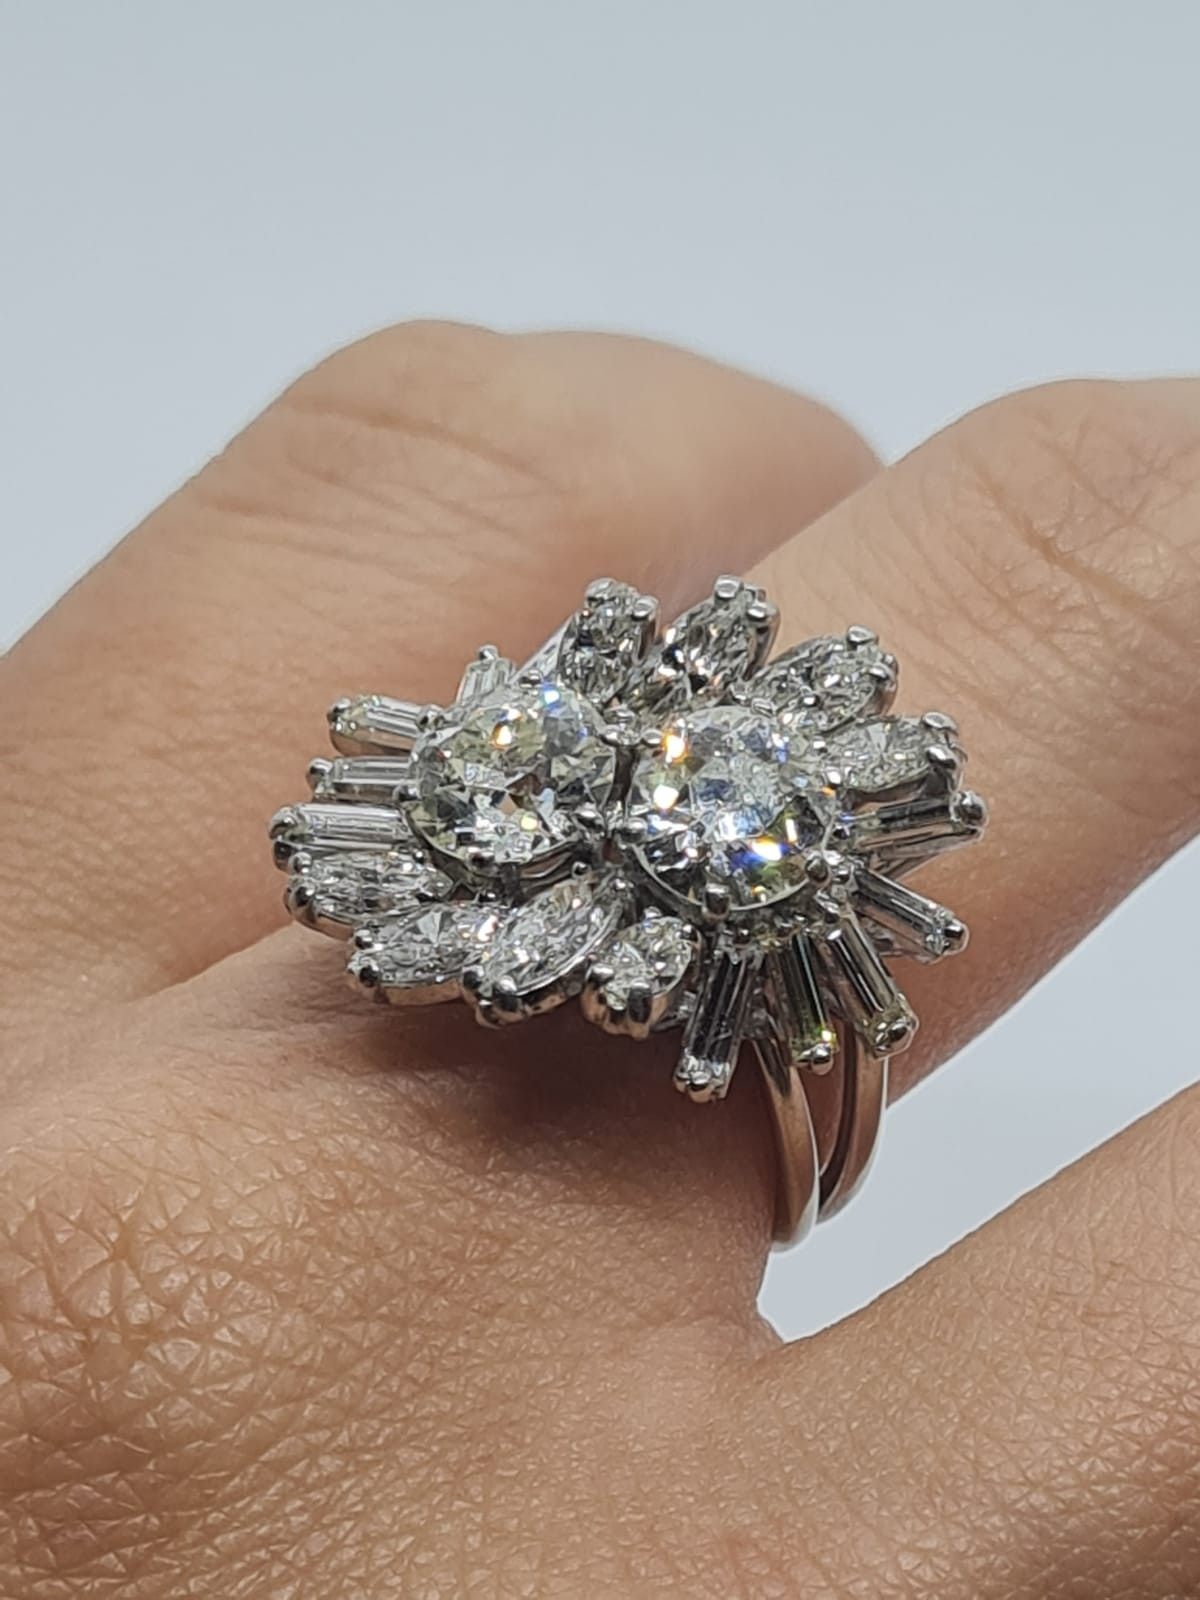 18k white gold diamond cluster ring with approx over 5ct diamonds in total, weight 10g and size M1/2 - Image 3 of 11